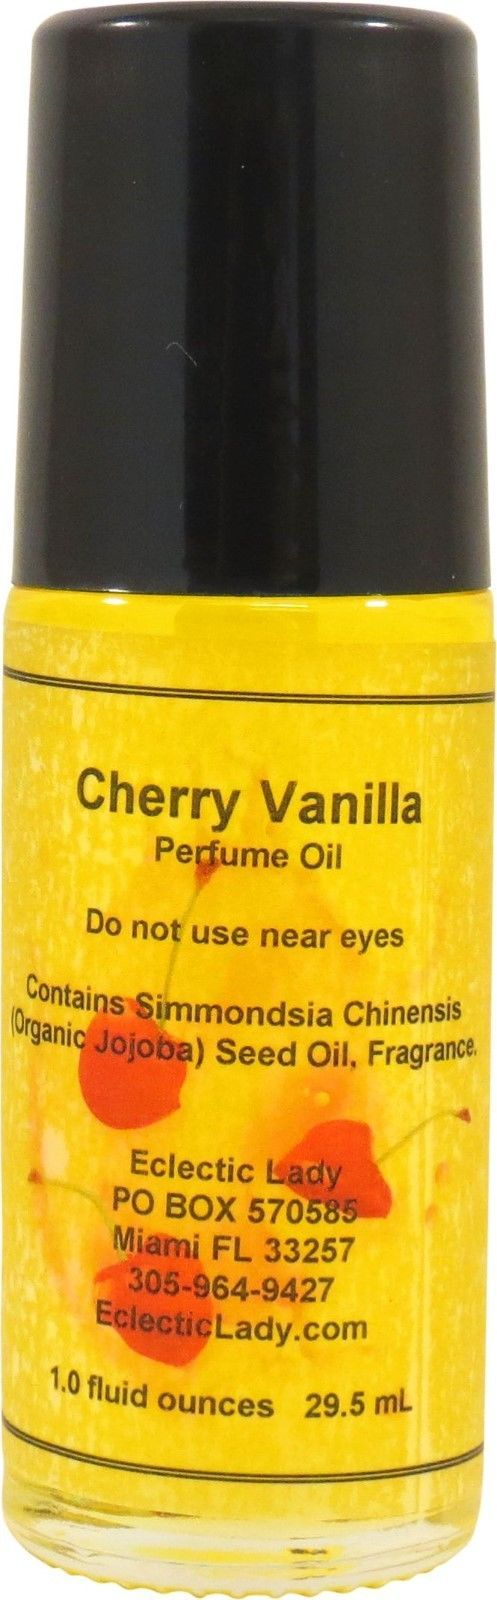 Cherry Vanilla Perfume Oil, Roll On Perfume Oil